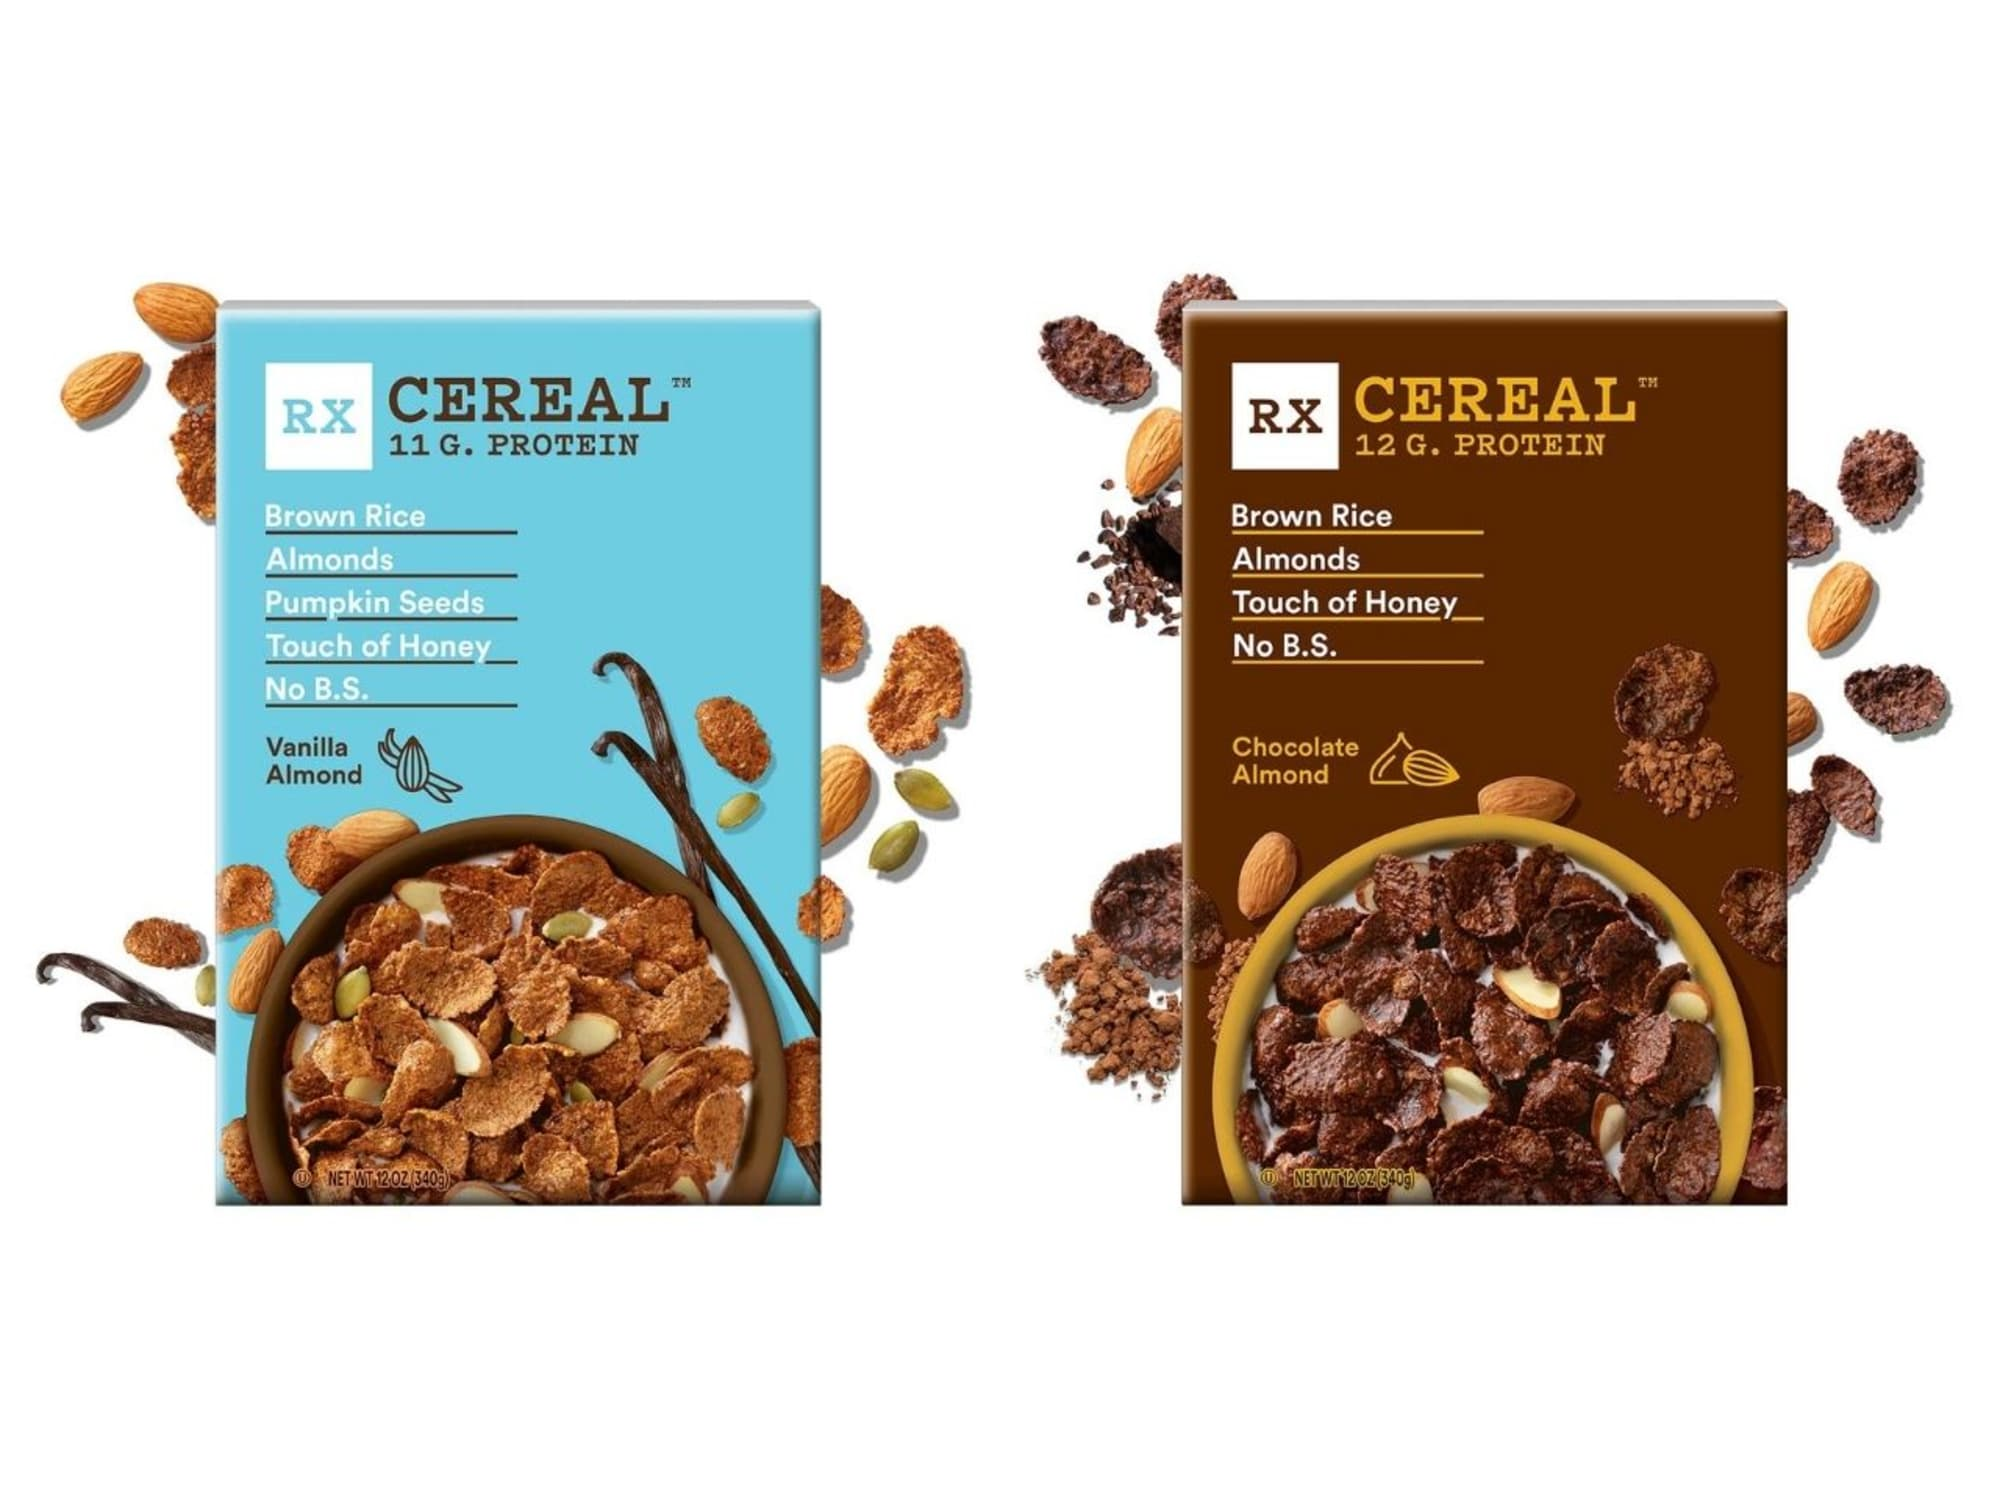 RX Cereal only puts the good stuff into the cereal bowl